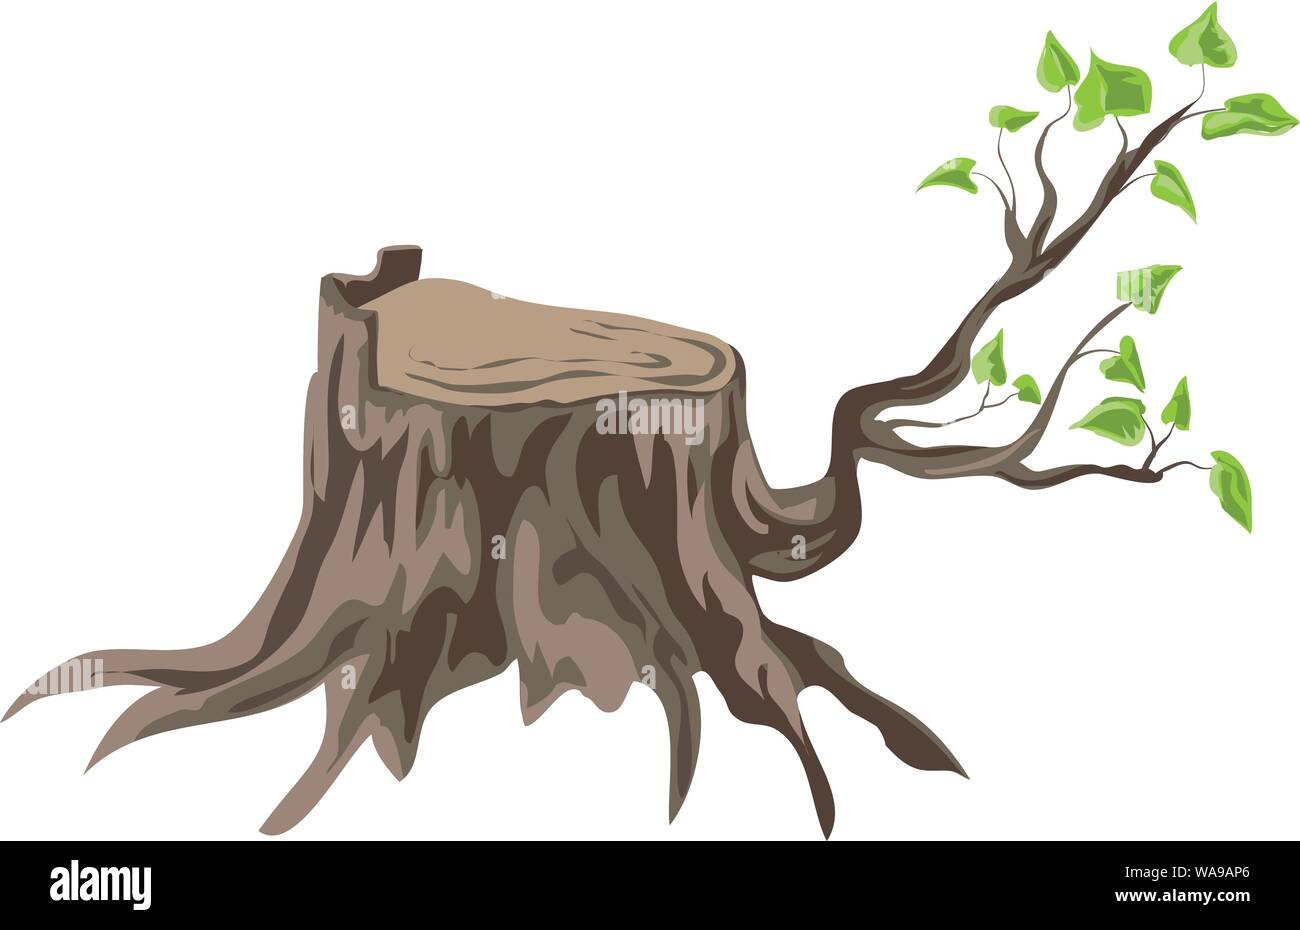 Tree Stump With Branch Icon Cartoon Of Tree Stump With Branch Vector Icon For Web Design Isolated On White Background Stock Vector Image Art Alamy The best selection of royalty free tree stump cartoon vector art, graphics and stock illustrations. https www alamy com tree stump with branch icon cartoon of tree stump with branch vector icon for web design isolated on white background image264508110 html